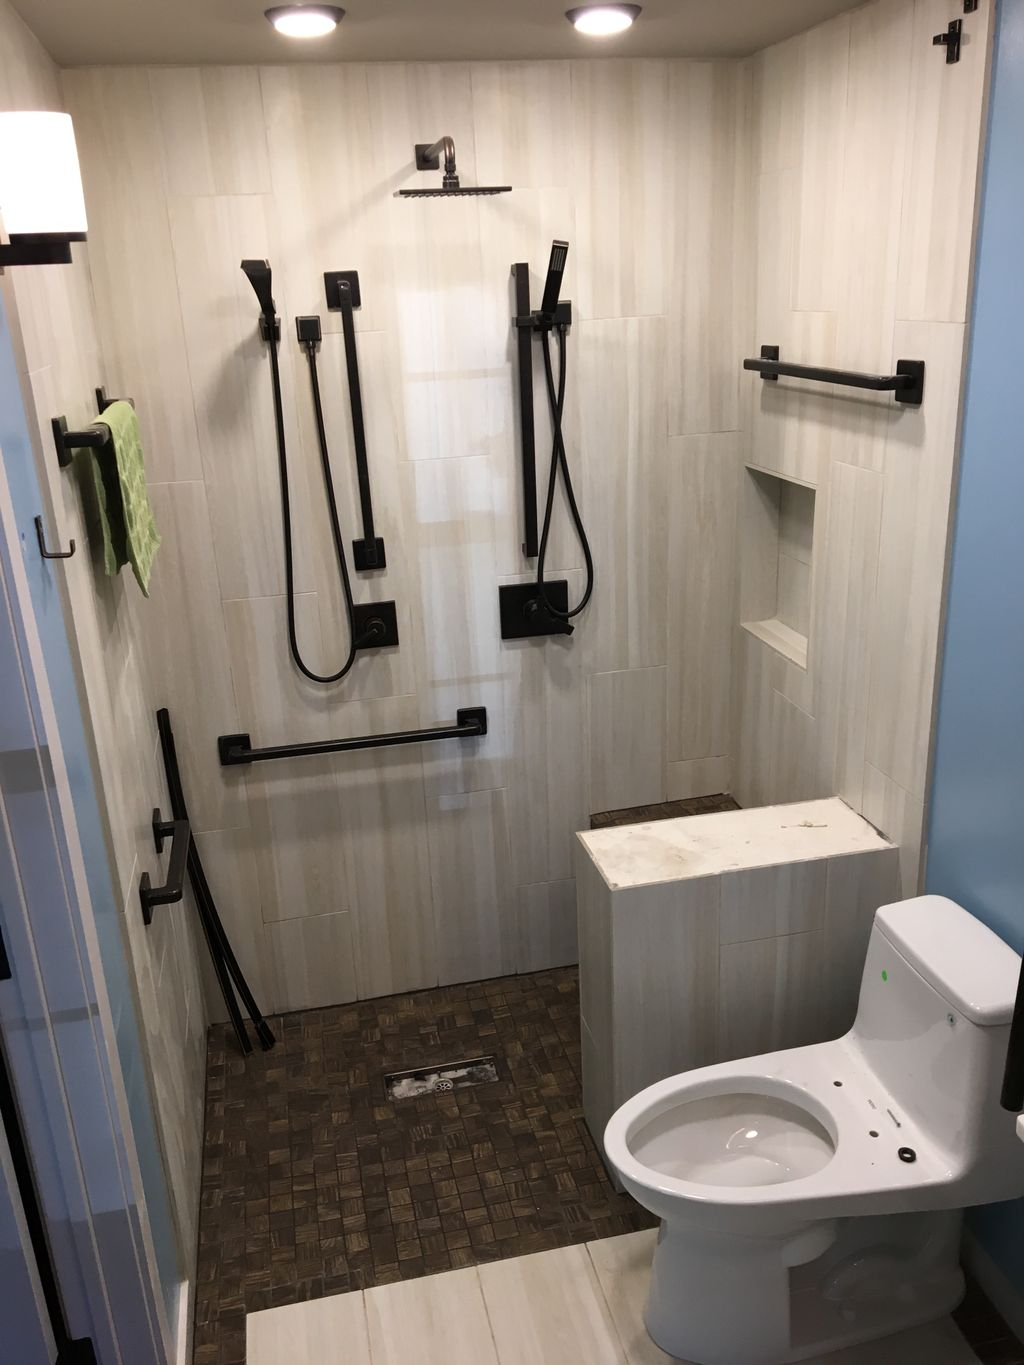 Handicap accesible bathroom